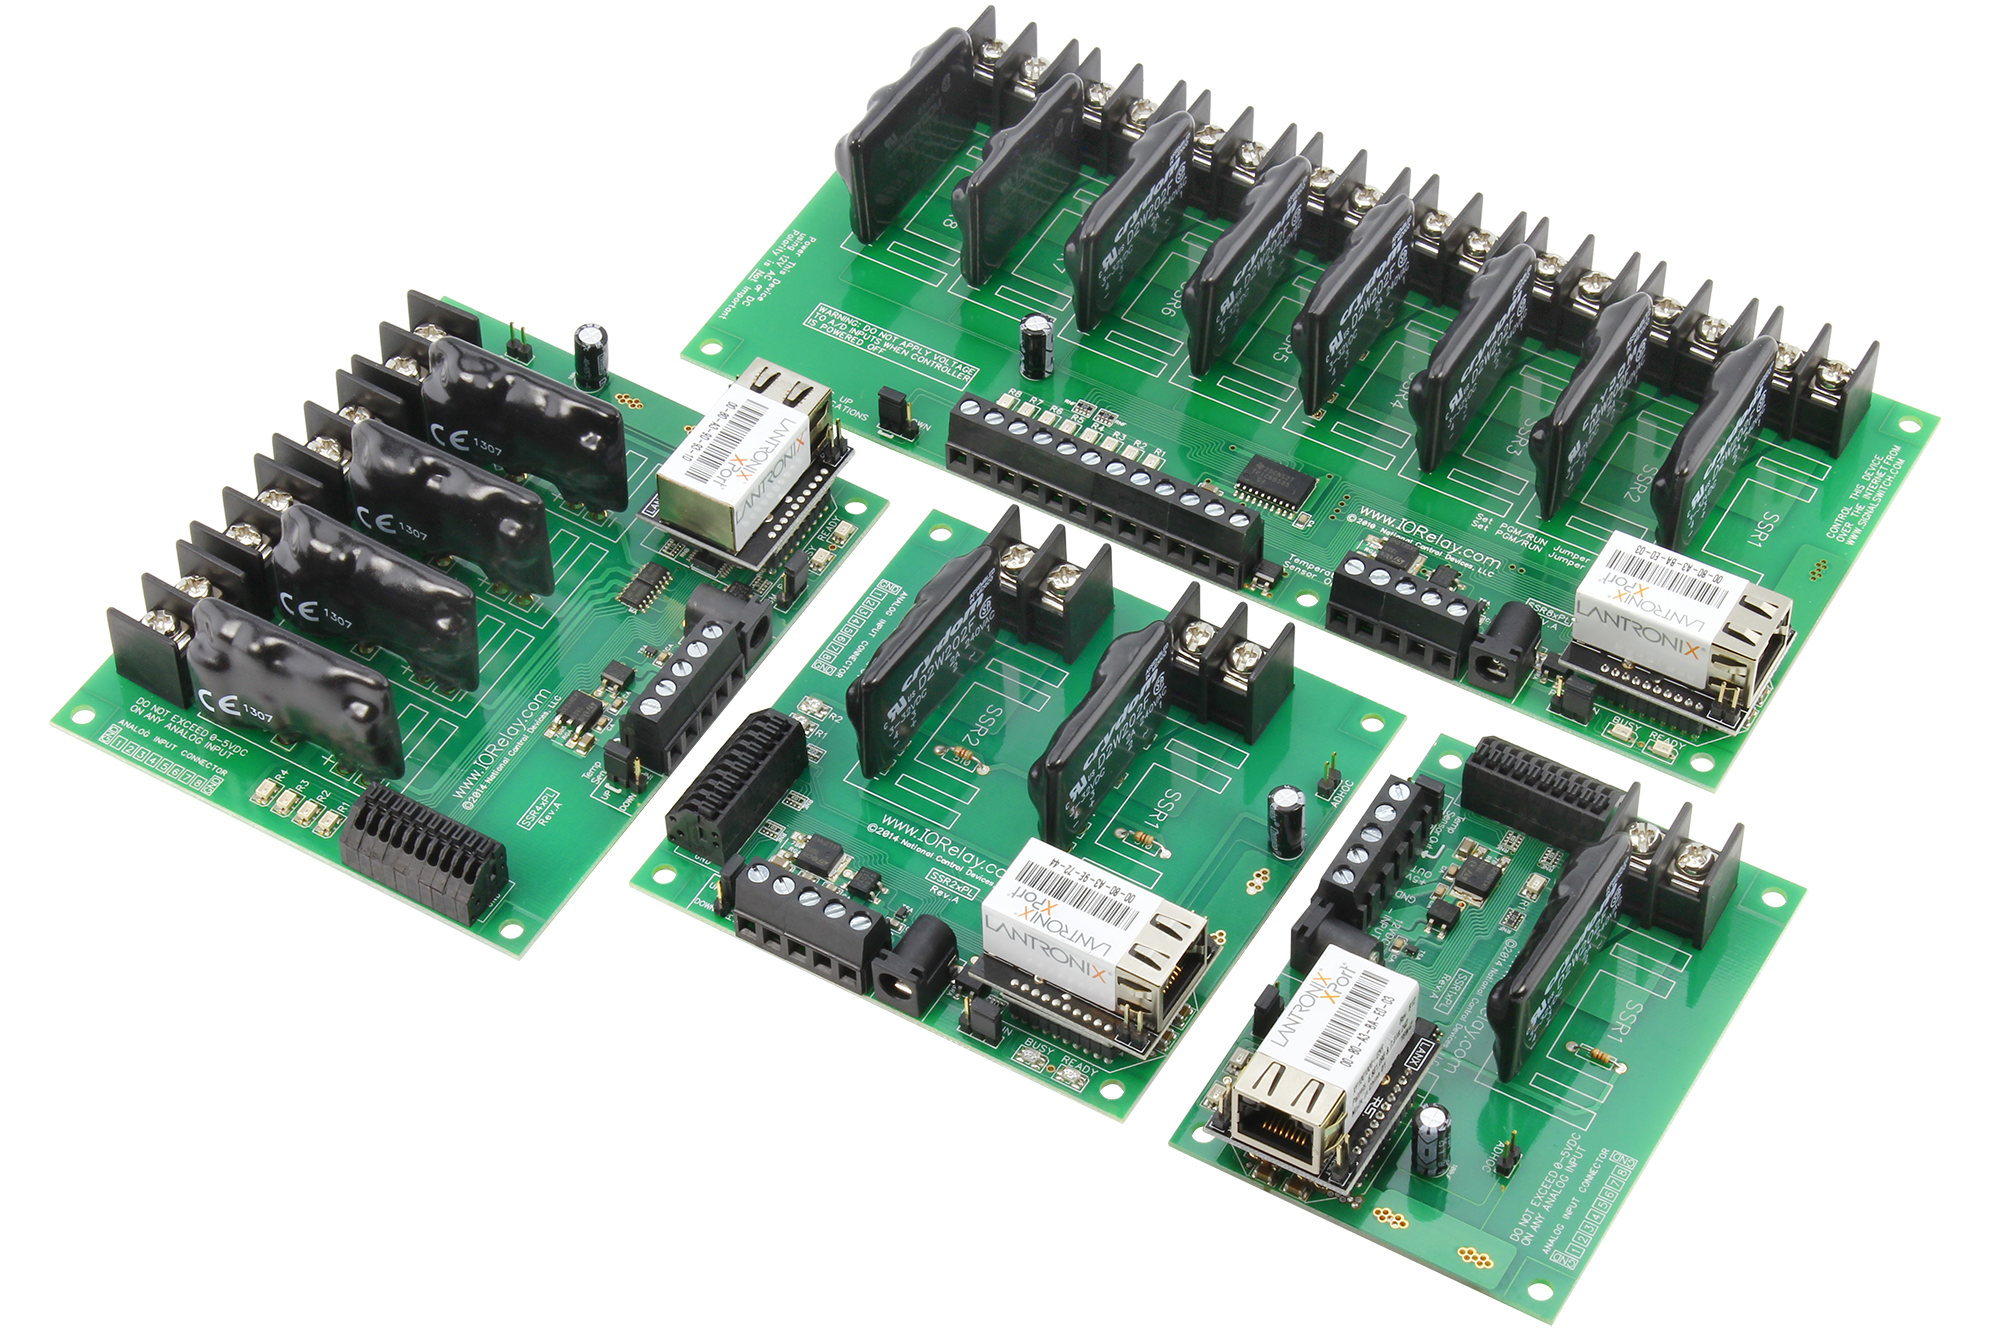 ethernet relay board for pc linux mac with 8 channel analog inputsethernet relay controllers with 8 channel adc